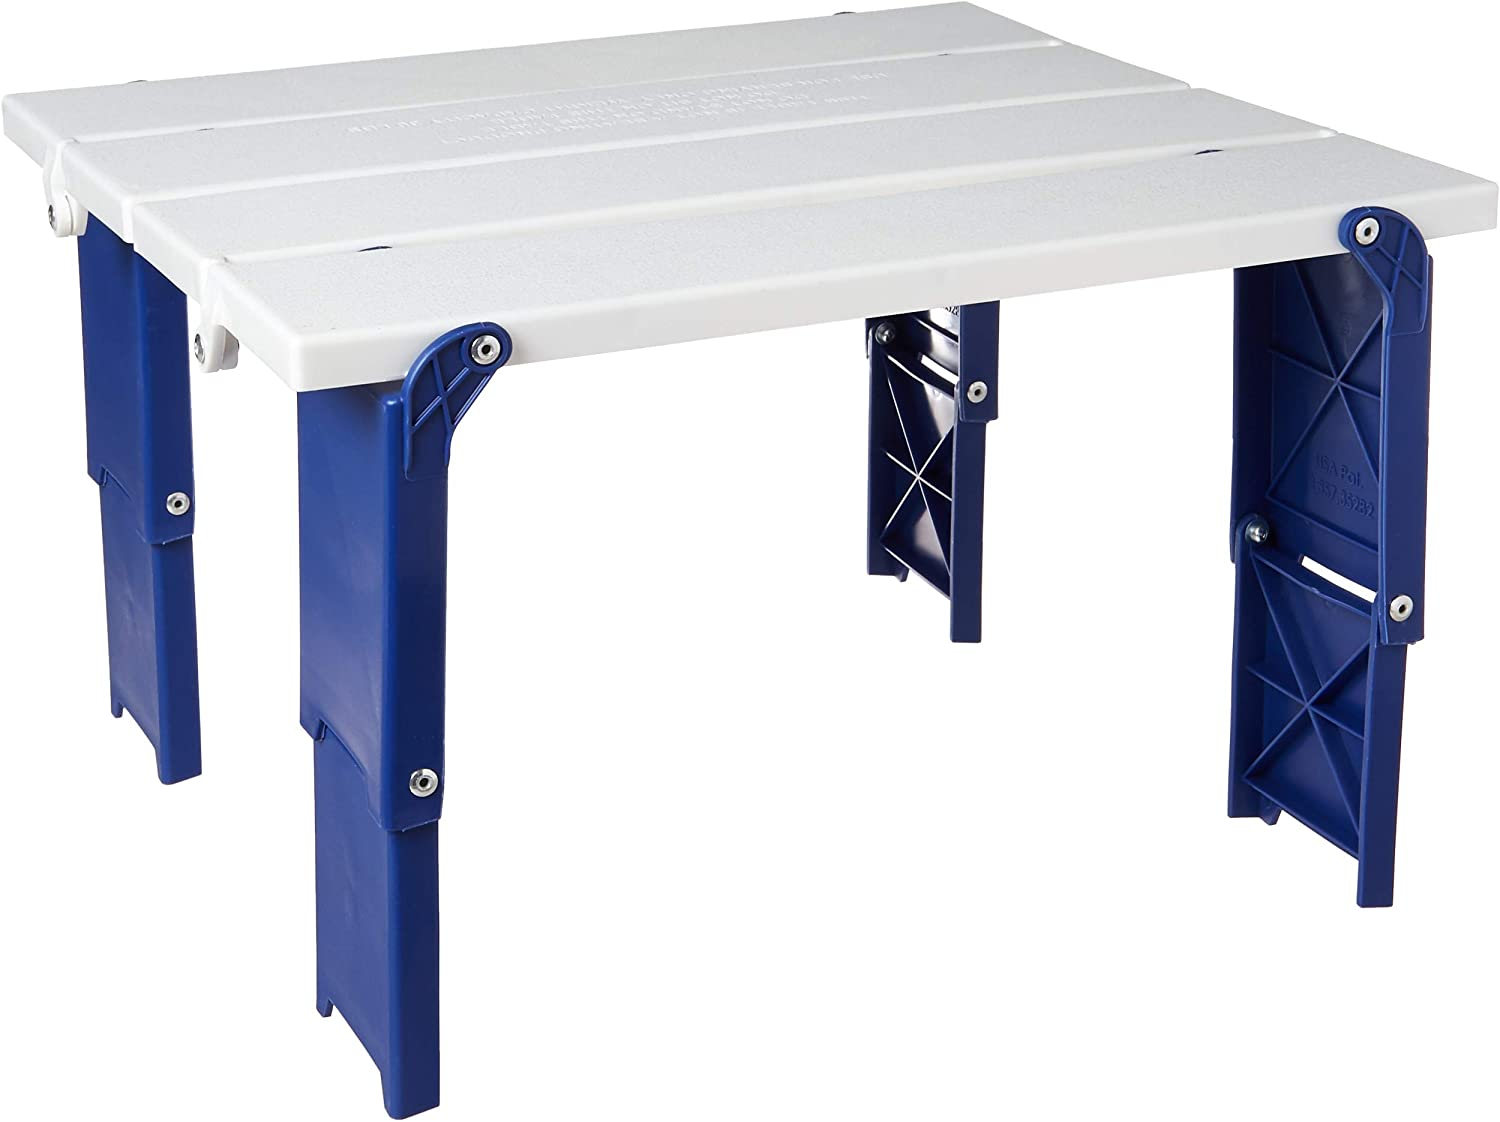 Rio Brands LLC BPT-01 - Mesa Plegable para Playa: Amazon.es: Juguetes y juegos